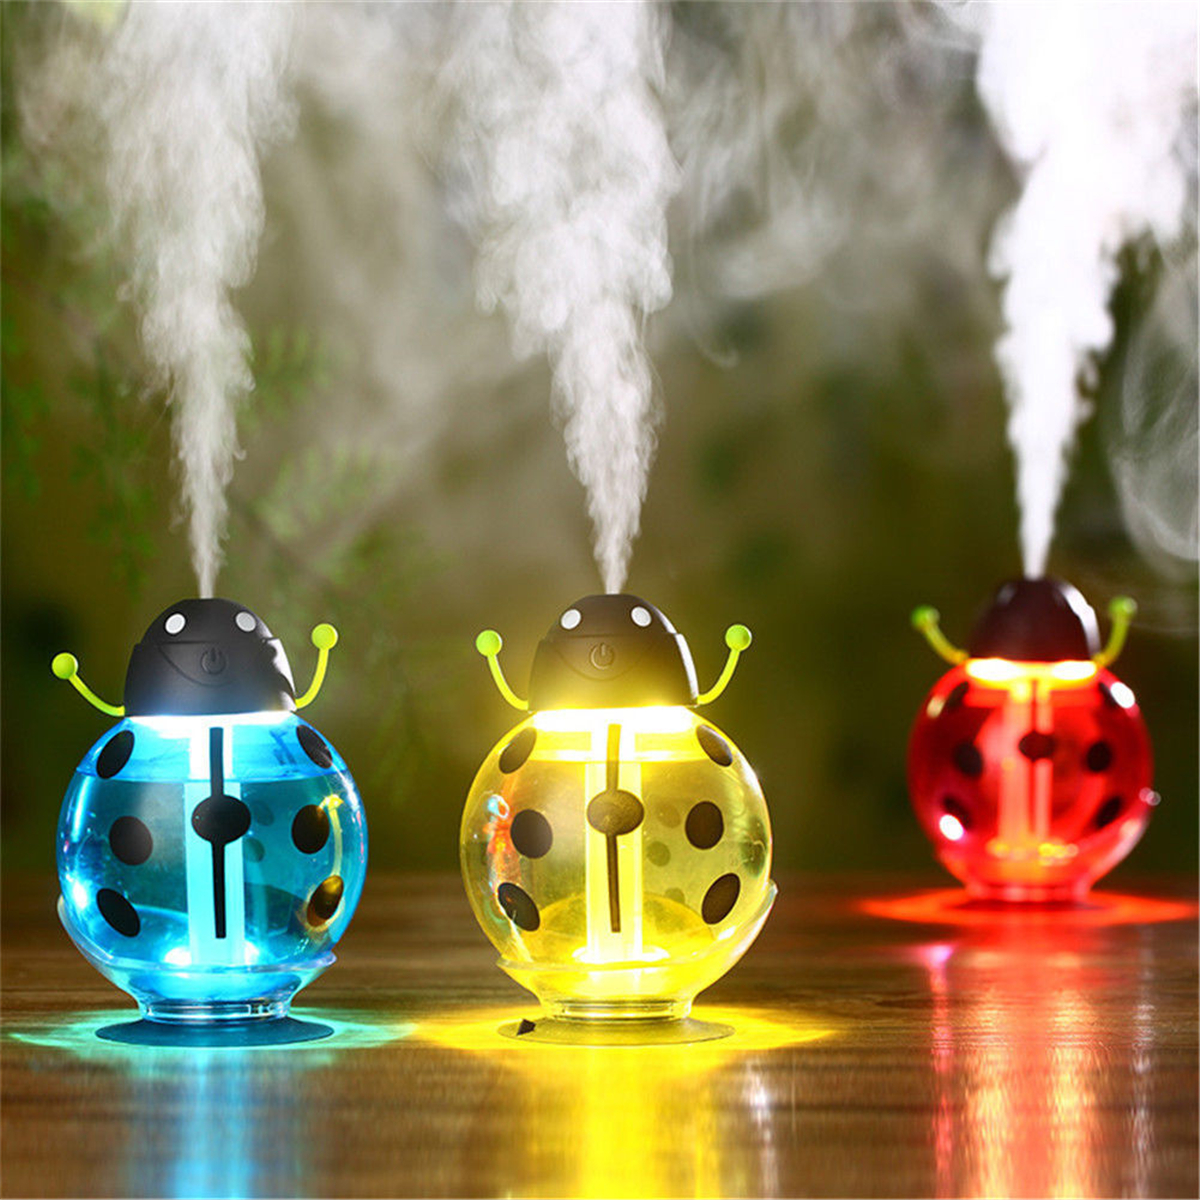 Luckyfine 5V 2W Beetles Ladybug Aroma LED Light USB Humidifier Air Diffuser Essential Oil Aromatherapy Purifier Mist Maker Car Office Home Air Frshener